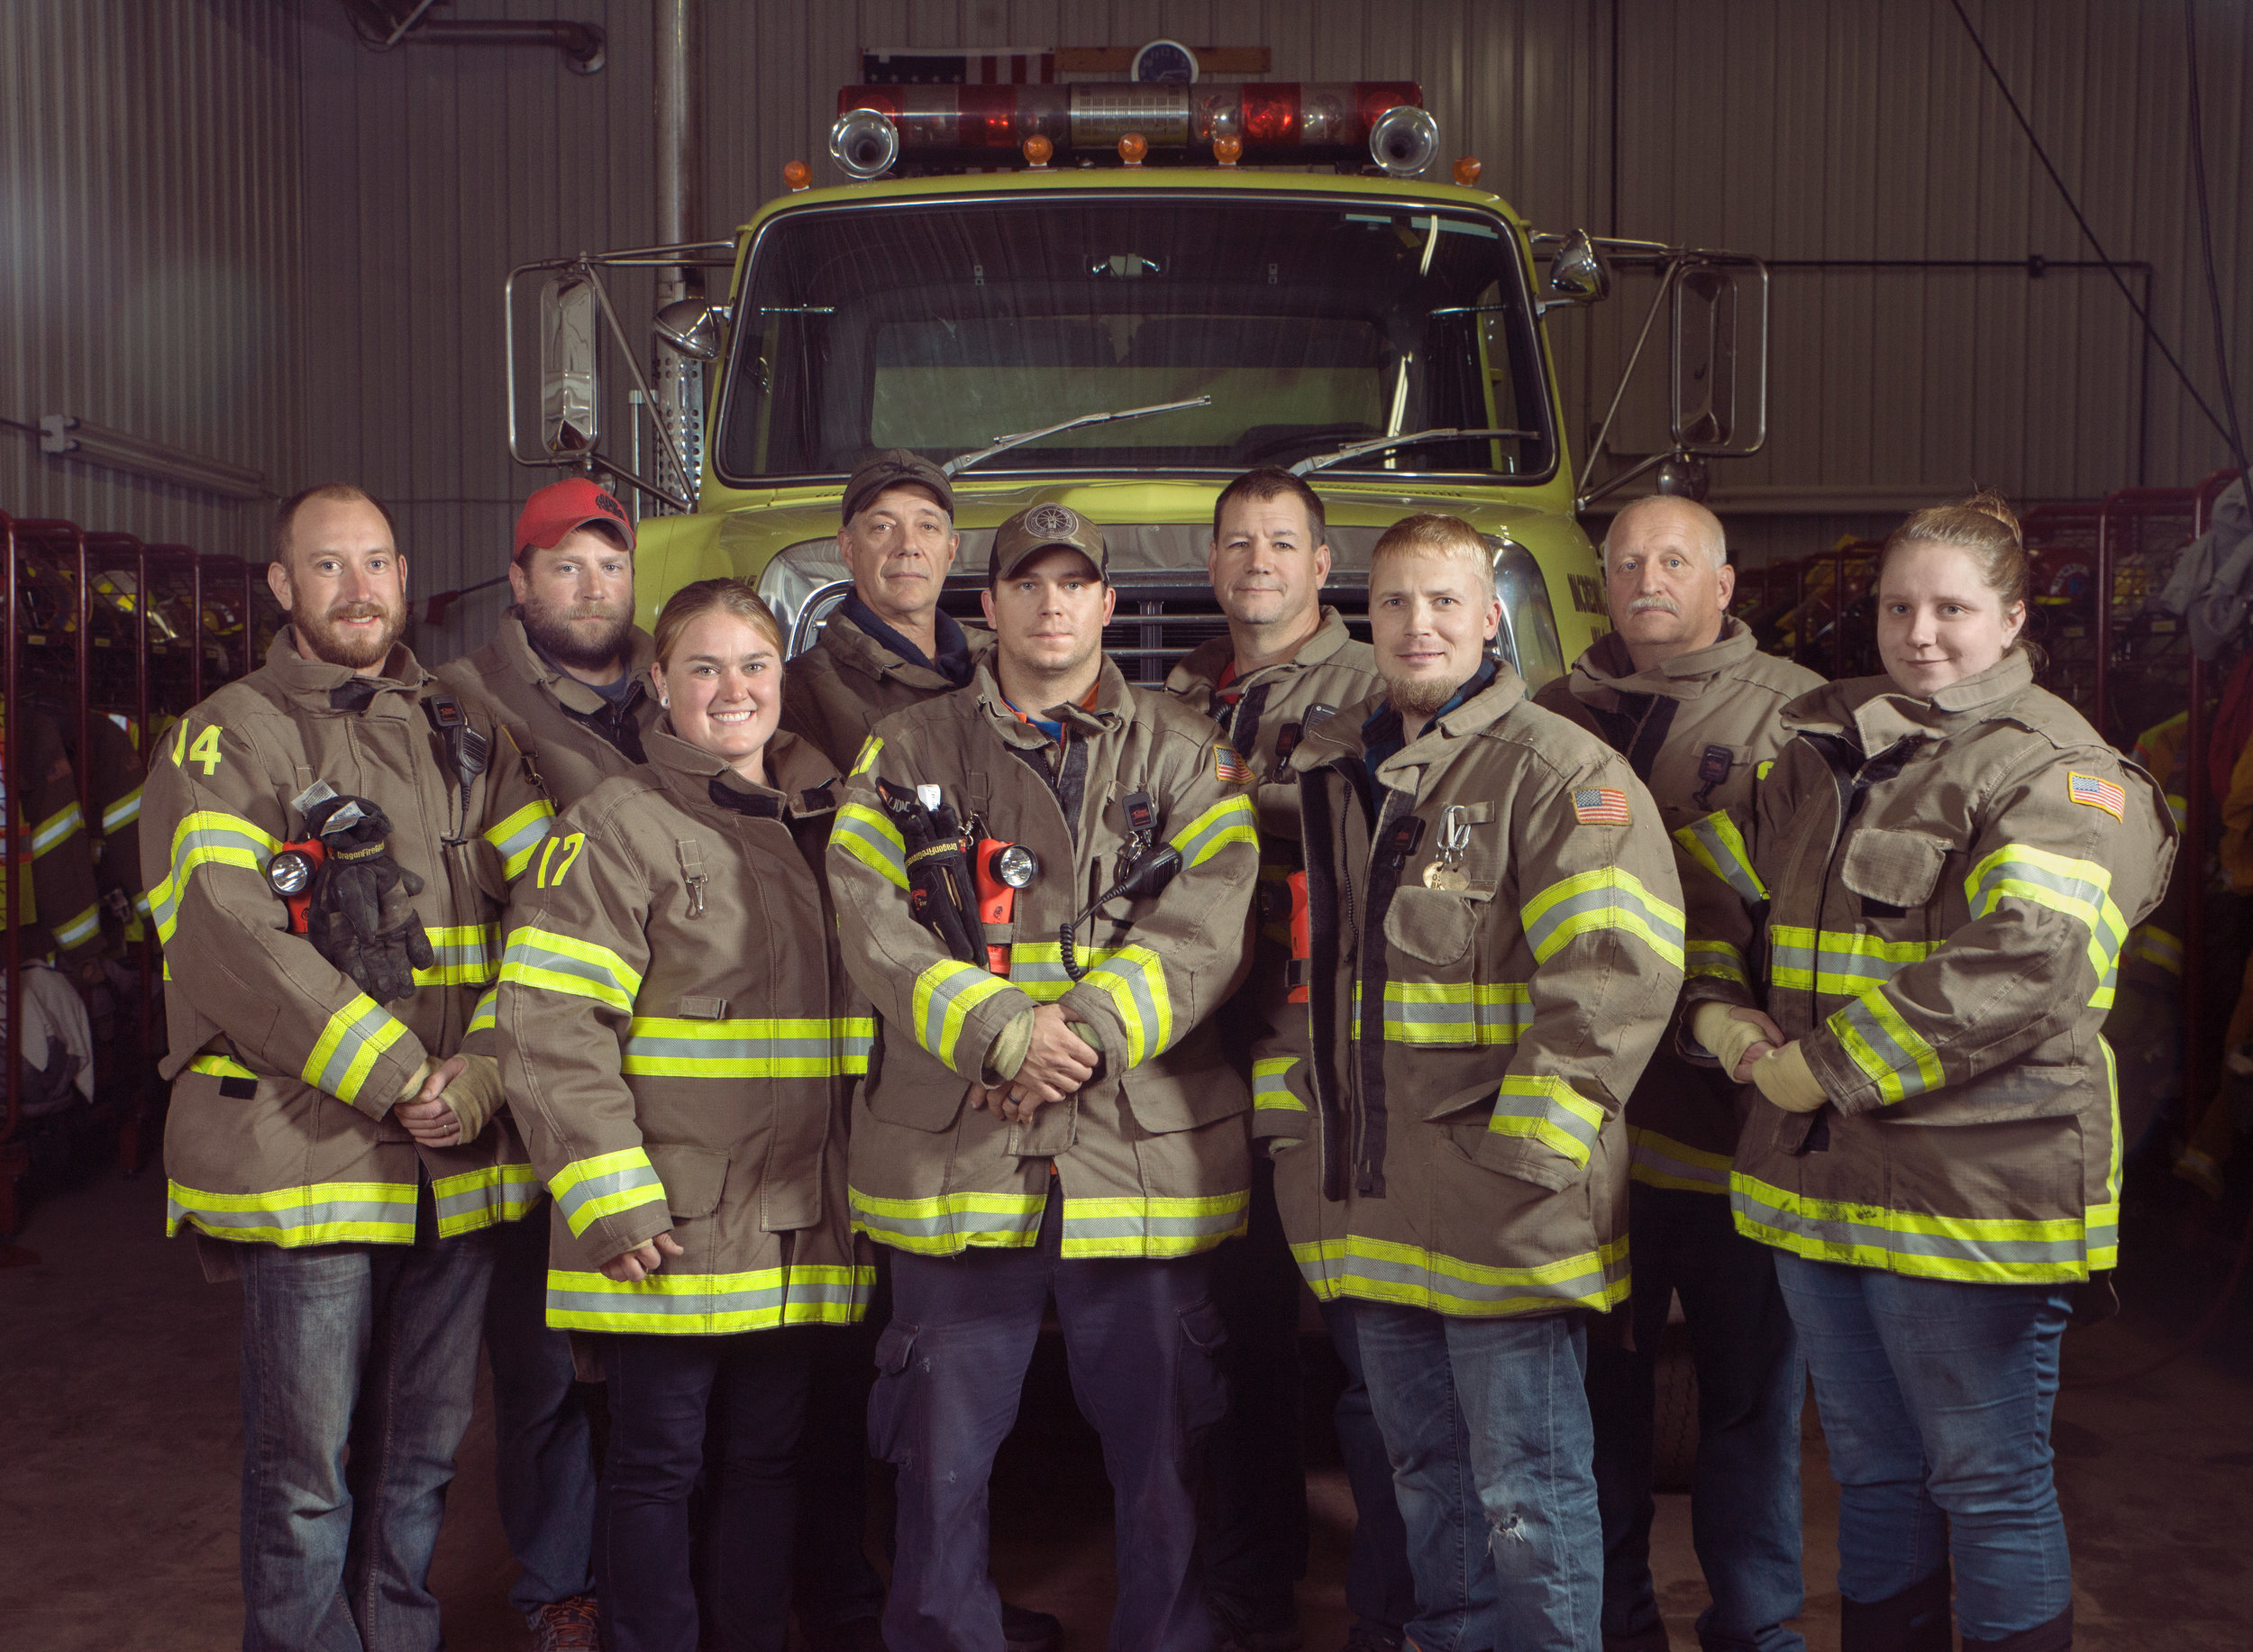 HFD - Back Row: Steve Bartanen, Bill Gierut, Jeff Prophet, Gary LaitalaFront Row: Zach Quayle, Jenni Quayle, Dillon Vial, Brett Kyllonen, Brooke TarvainenNot Pictured:Jim Carlisle, Joe Derocha, Will Derocha, Roy Pascoe, Sanford Pesola, Bill Robson, Craig Thompson, Dave Wasie, Matt Zumpf